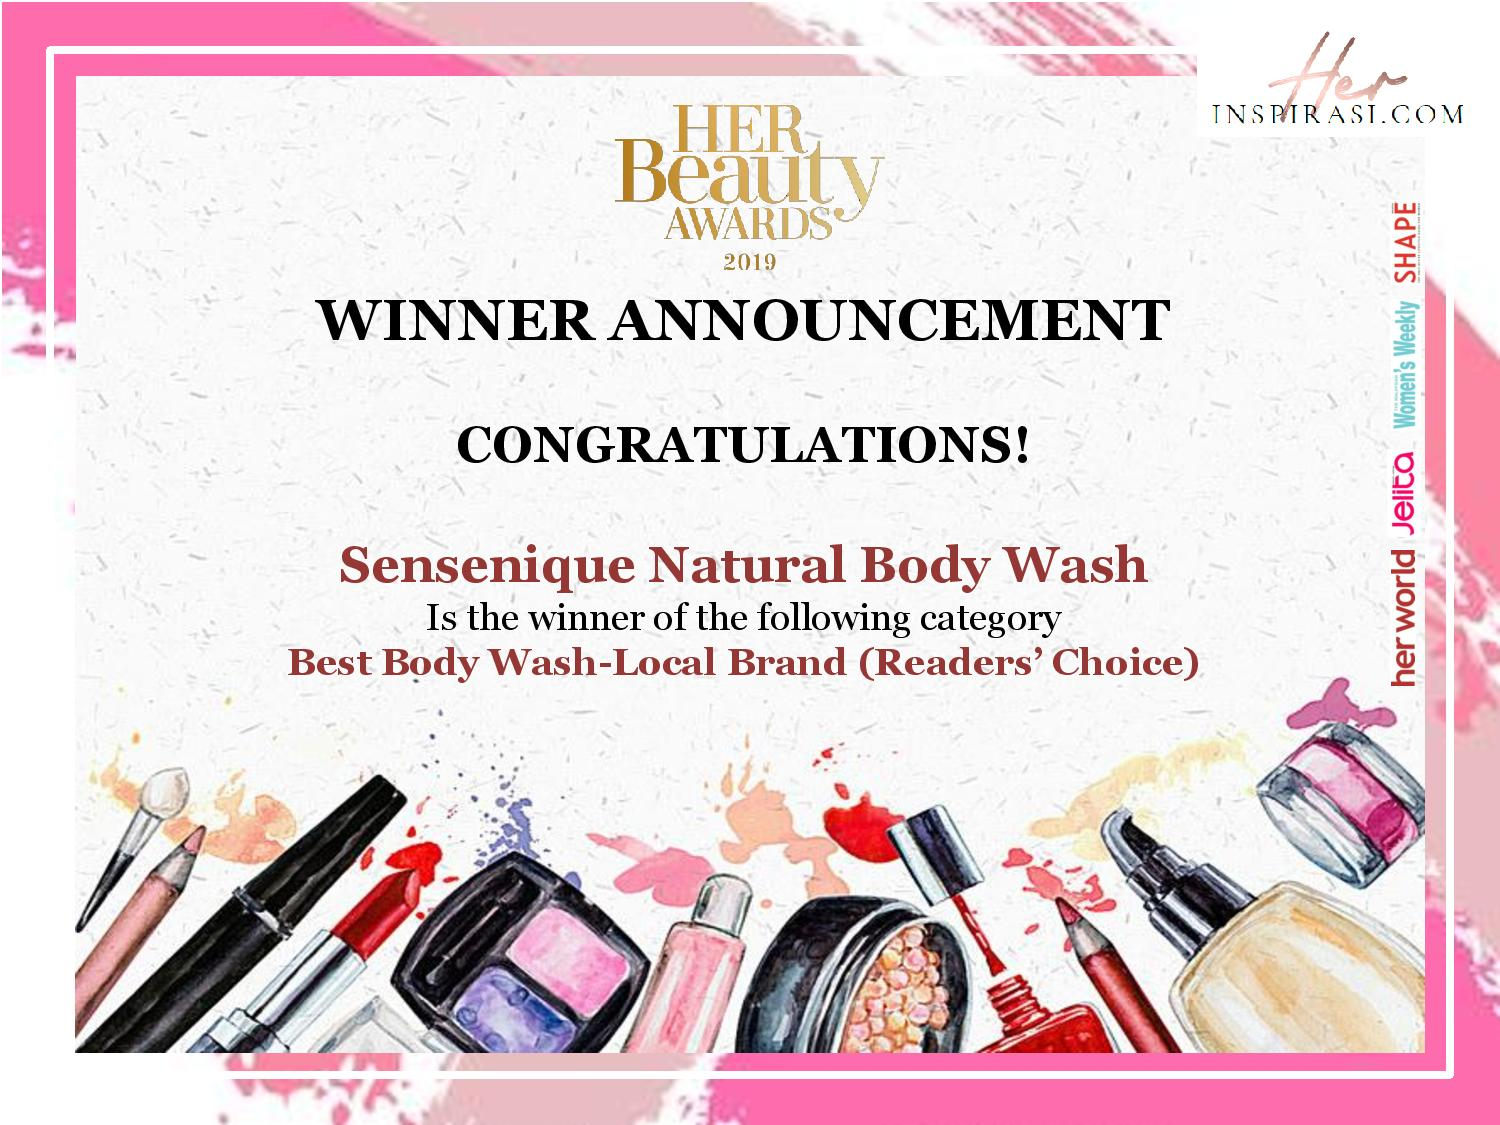 HER BEAUTY AWARDS 2019 - Readers' Choice Sensenique Natural Body Wash